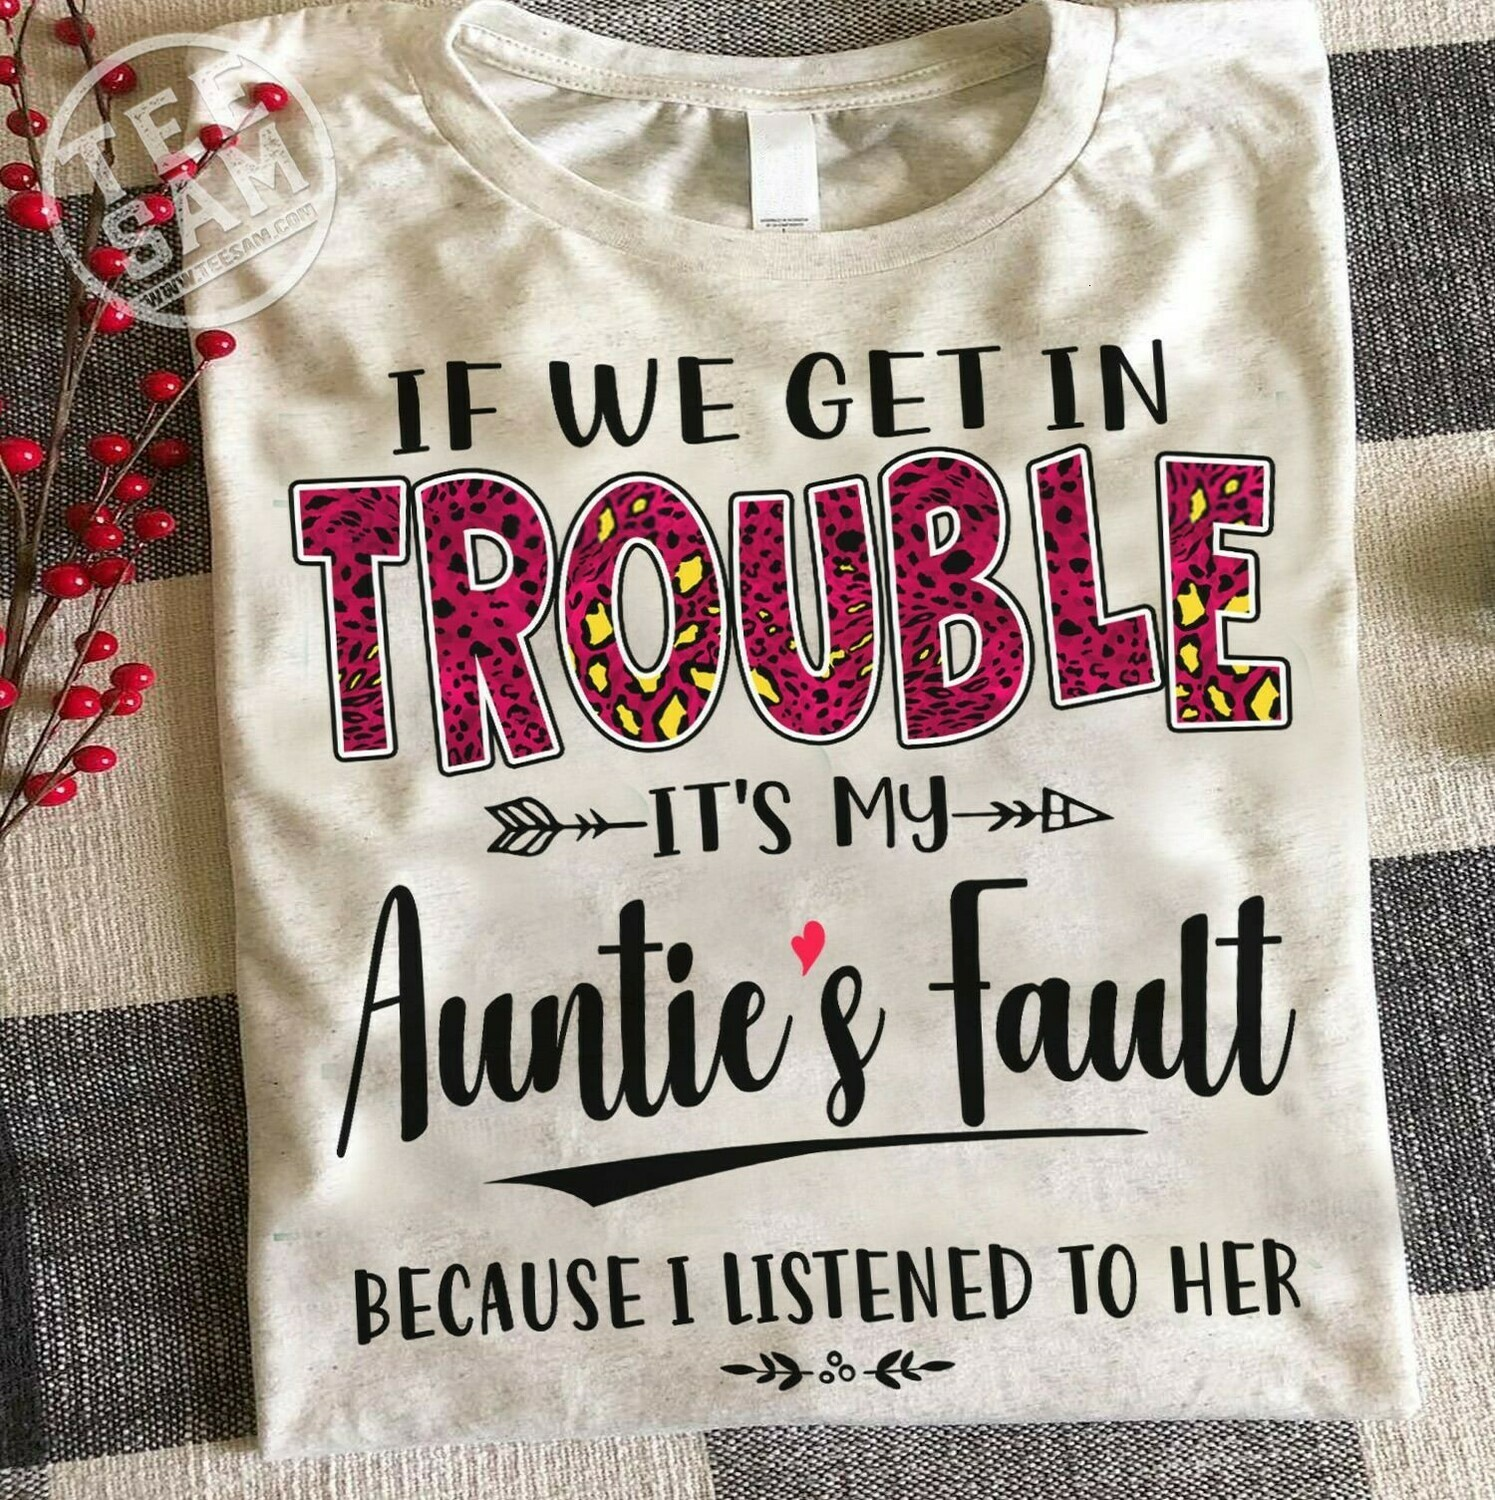 If We Get In Trouble It's My Auntie's Fault Because I listened To Her  Unisex T-Shirt Hoodie Sweatshirt Sweater Plus Size for Ladies Women Men Kids Youth Gifts Tee Jolly Family Gifts